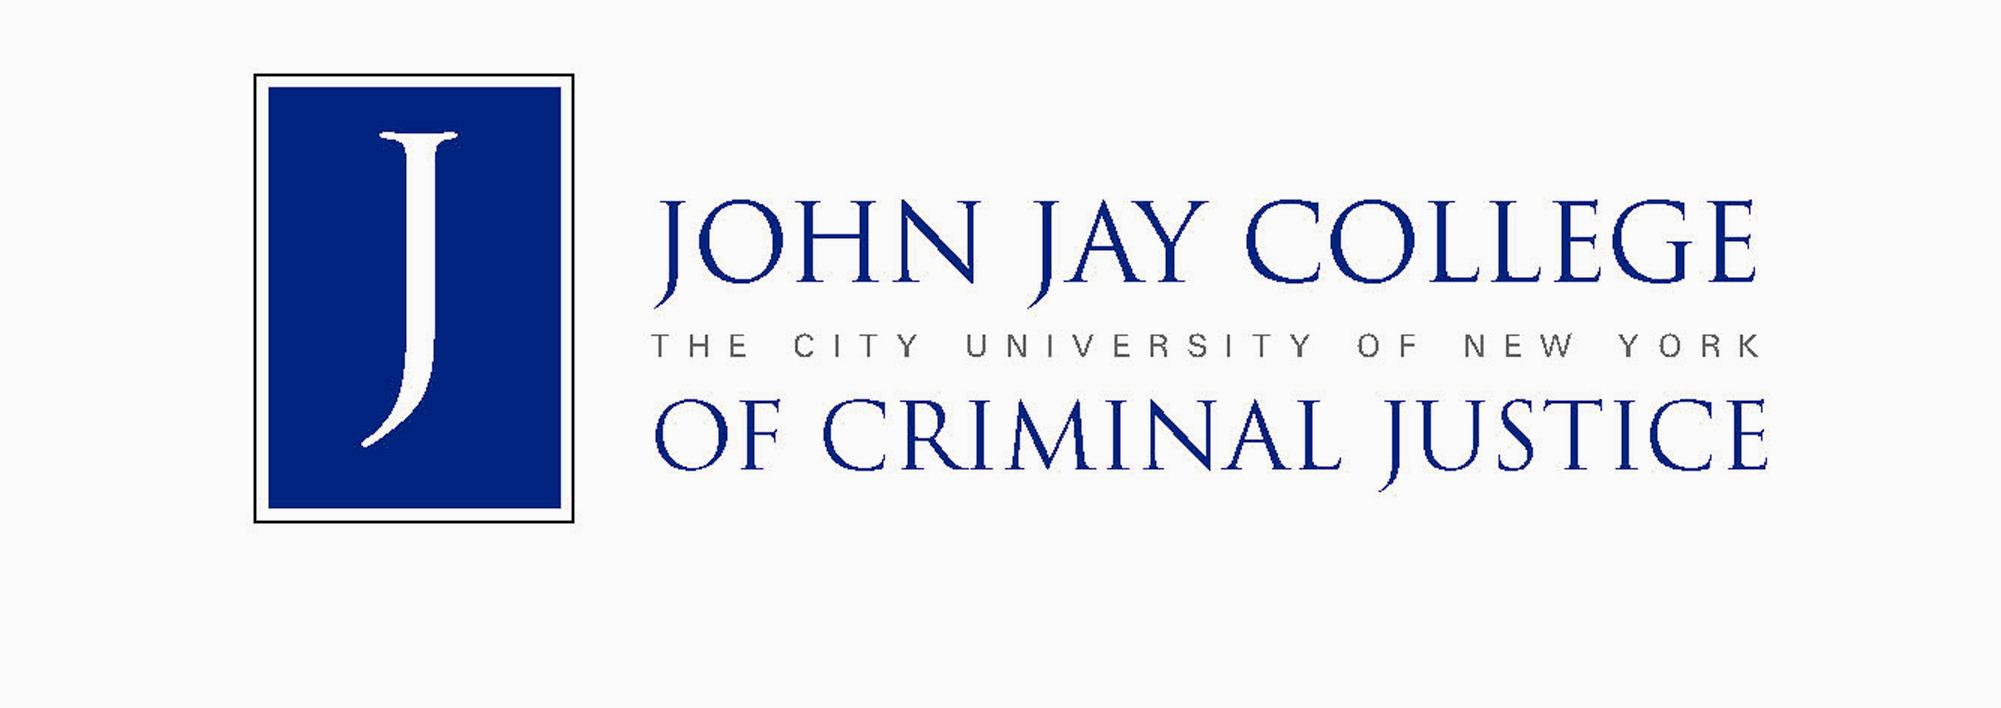 criminal justice scholarships If you are considering pursuing a criminal justice degree, the cost of higher education may concern you, but there are a great deal of criminal justice degree scholarships and other forms of financial aid that will make your dream of being a criminal justice major more of a reality.